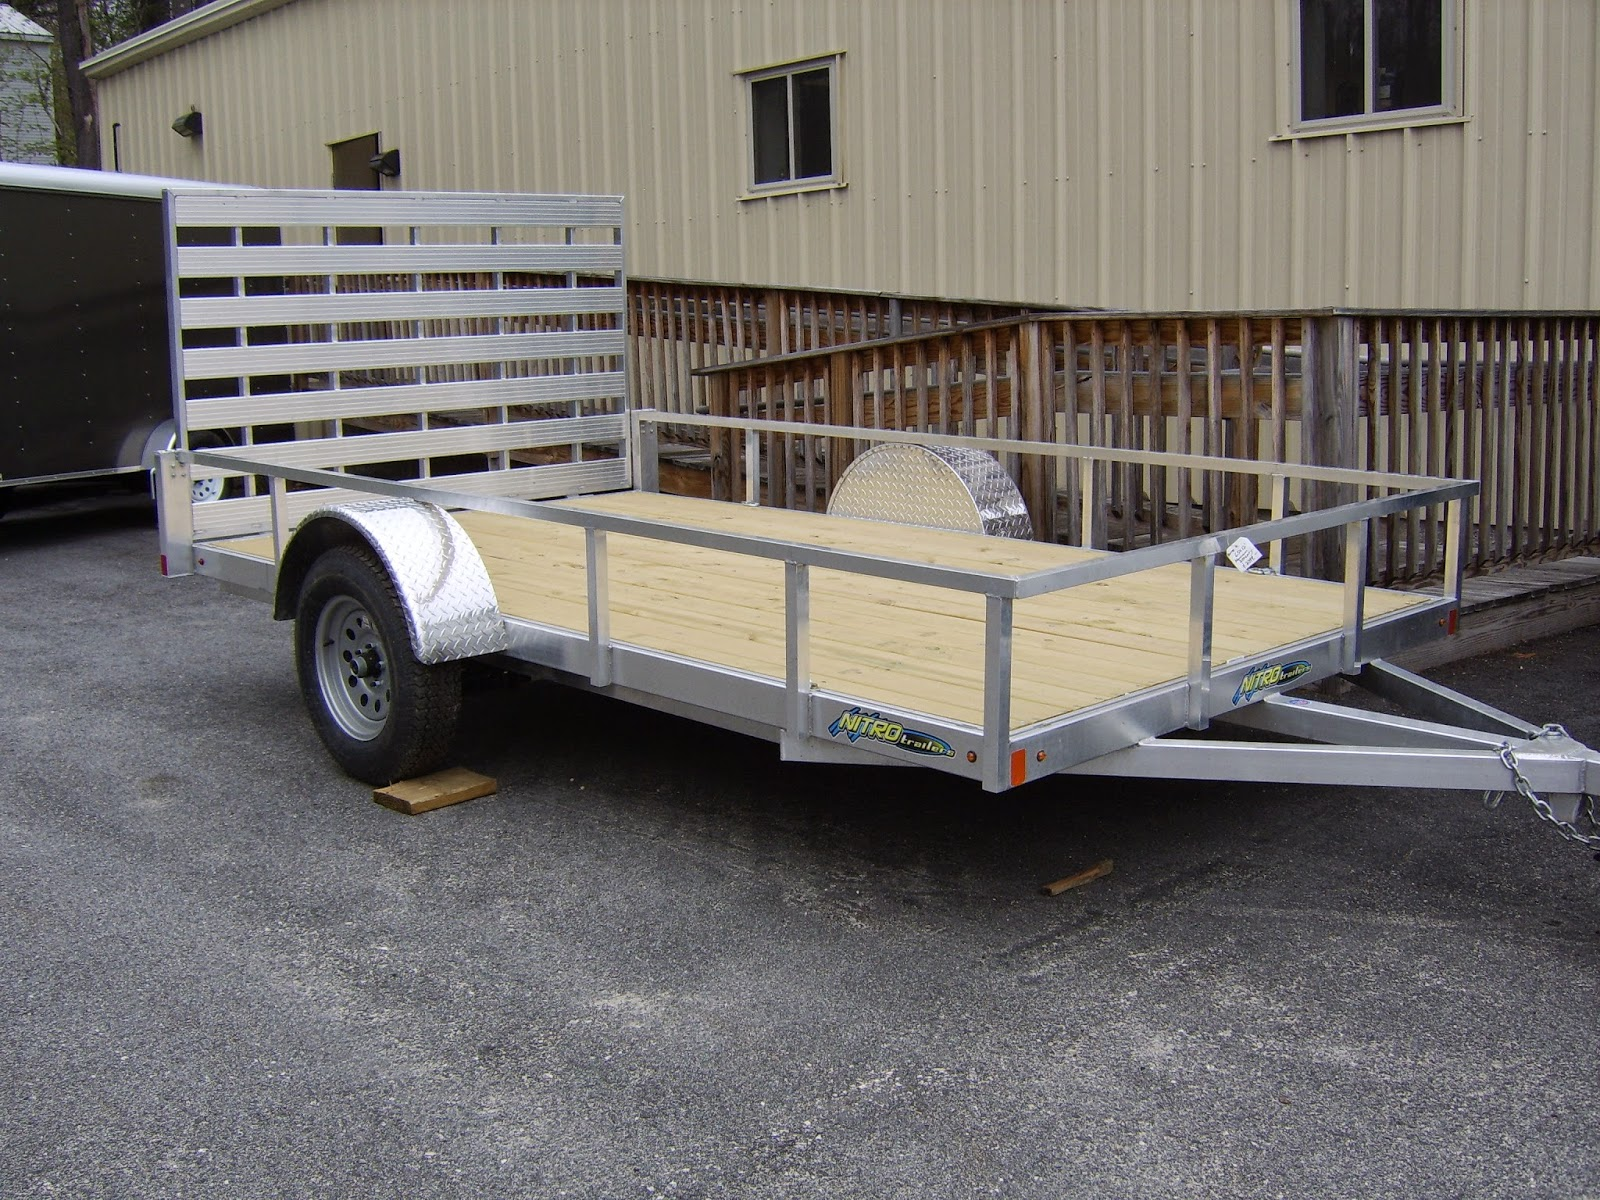 Utility Trailer Setup 5 Bikes 991958 likewise Look Trailers Stlc6x12si2 Single Axle Enclosed Trailer For Sale additionally Diamond Cargo 5x10 Single Axle besides Nitro Aluminum Utility Trailer further 6x10 Tail Gate Trailer. on 5x10 dump trailers